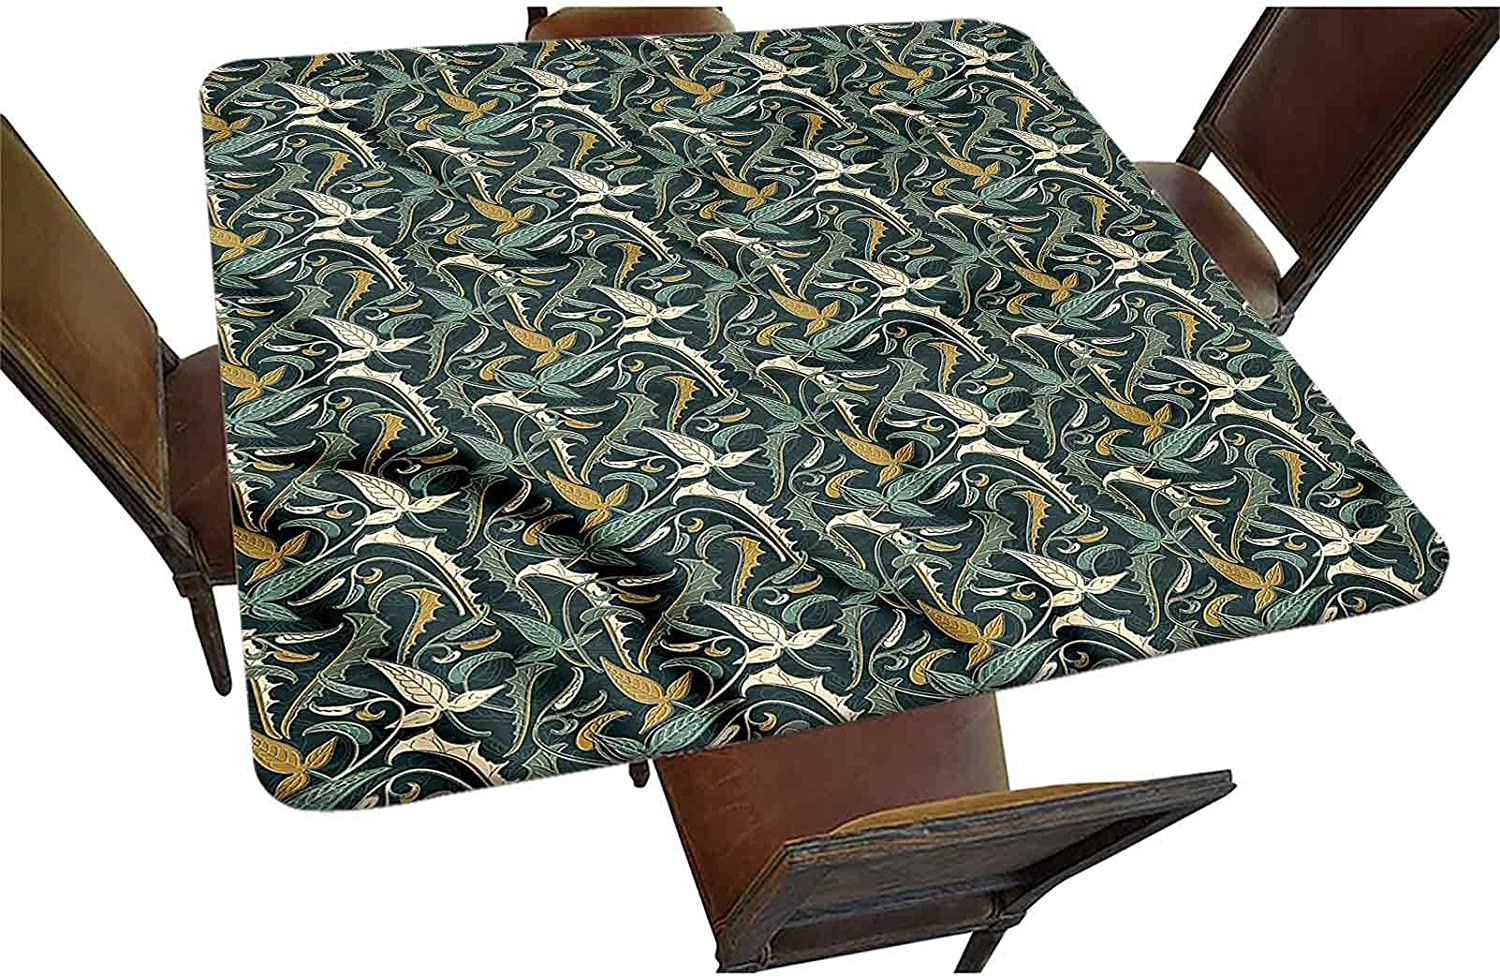 Leaves Sale Courier shipping free shipping price Decorative Elastic Edged Square Fitted Tablecloth Spring